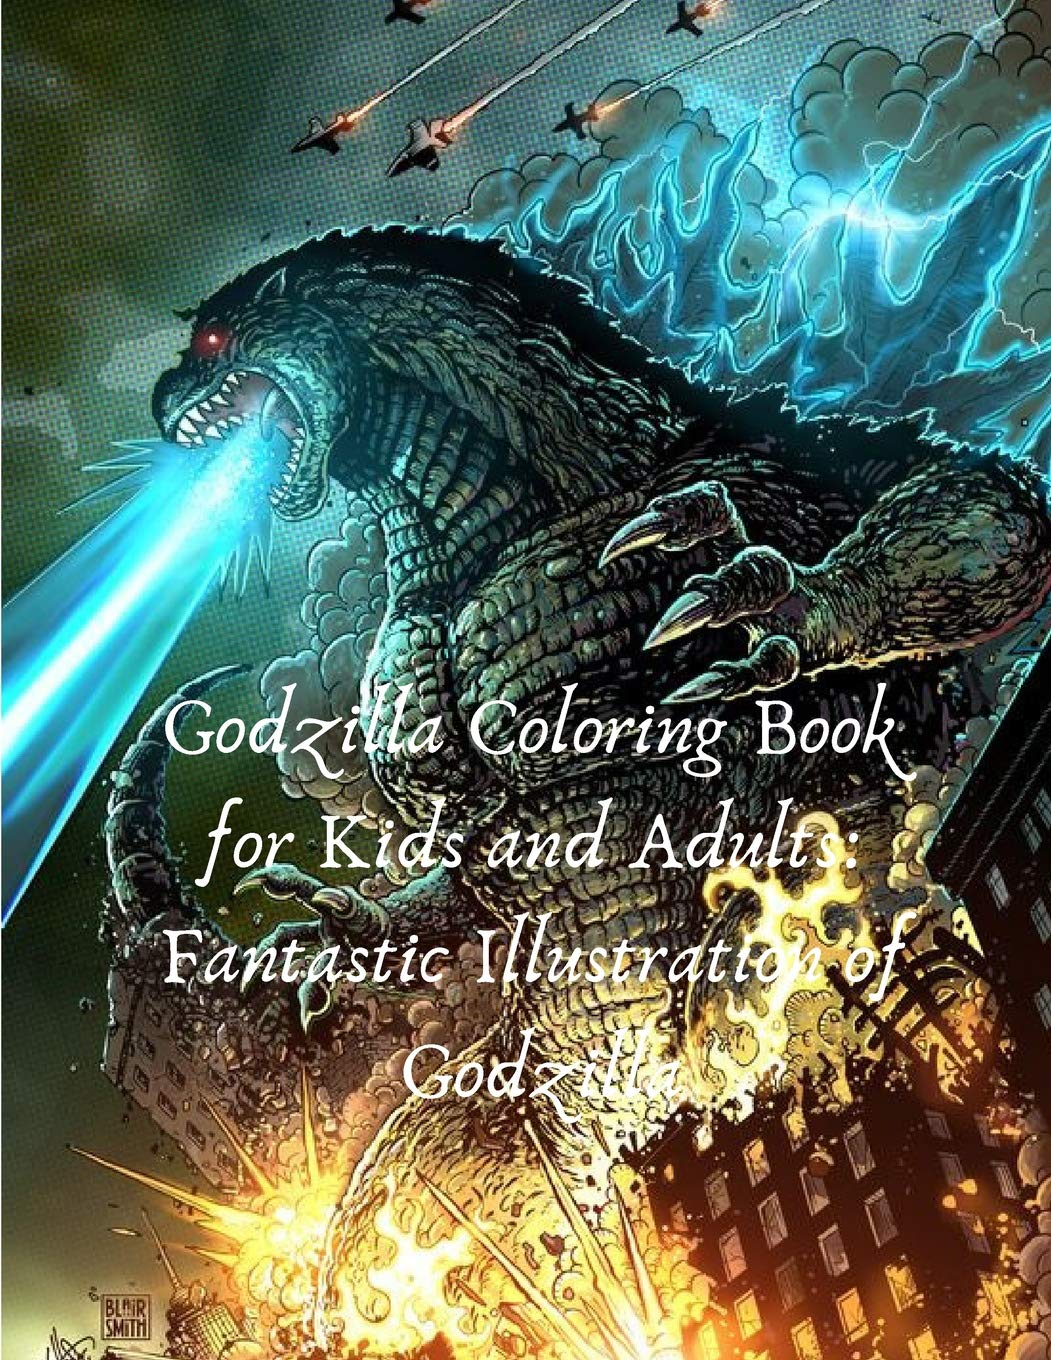 Godzilla Coloring Book for Kids and Adults: Fantastic ...